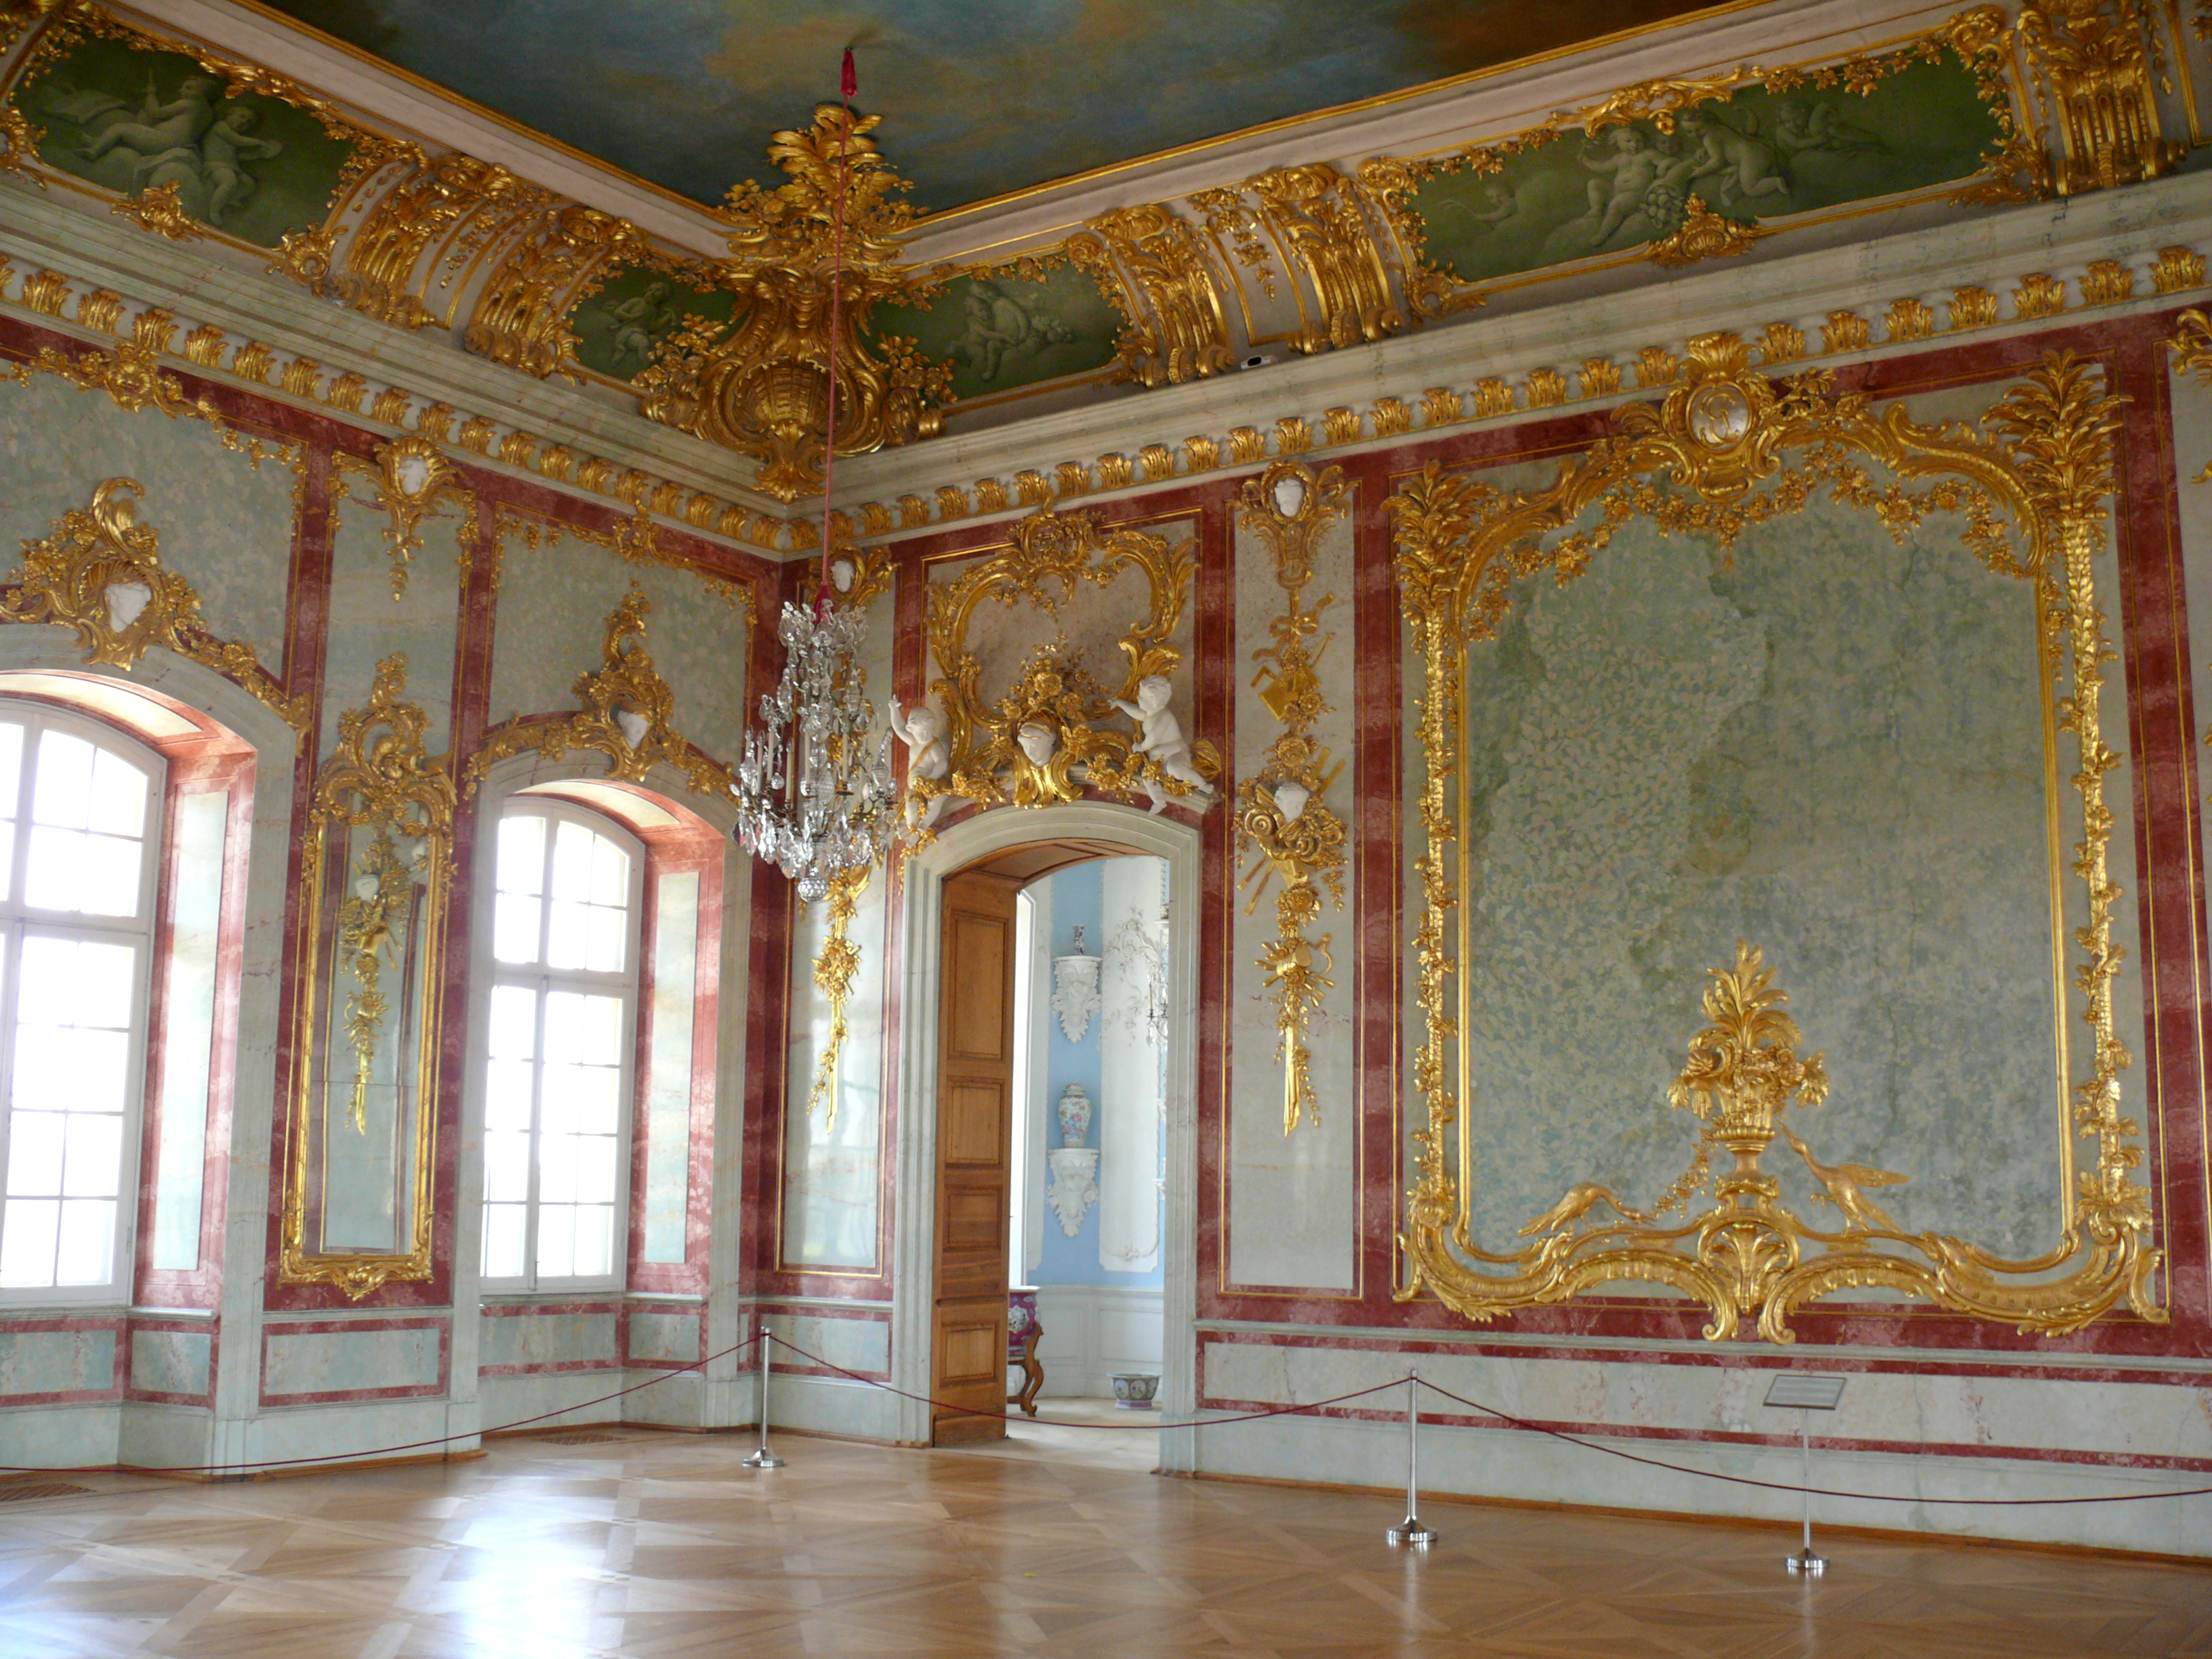 Palace clipart palace room. Rund le the hidden